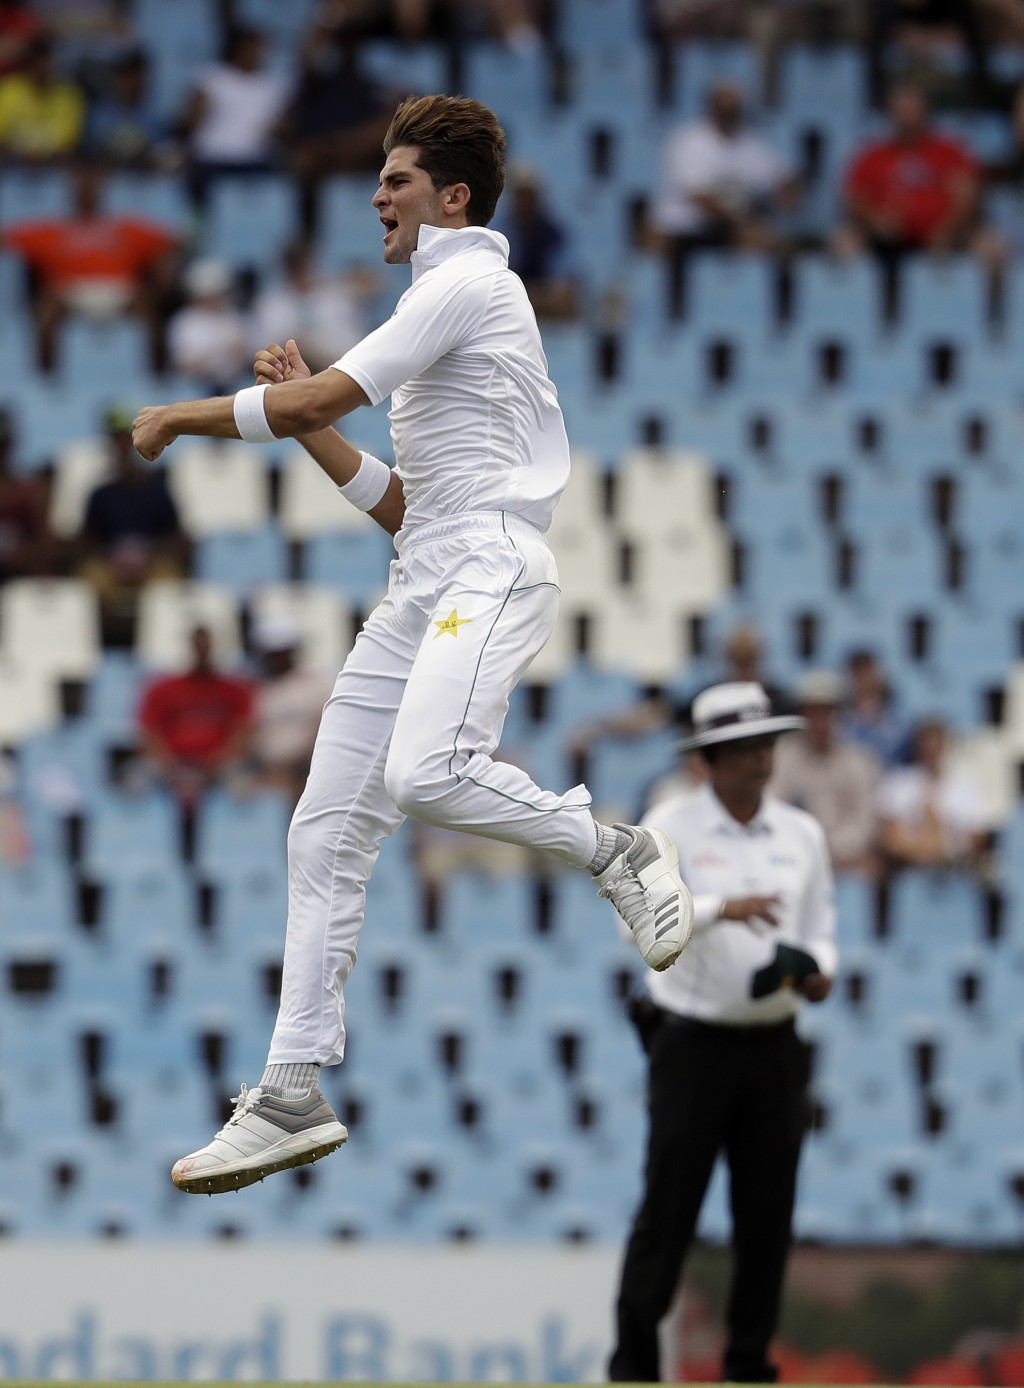 Pakistan's bowler Shaheen Afridi jumps as he celebrates after dismissing South Africa's batsman Temba Bavuma for 53 runs on day two of the first crick...